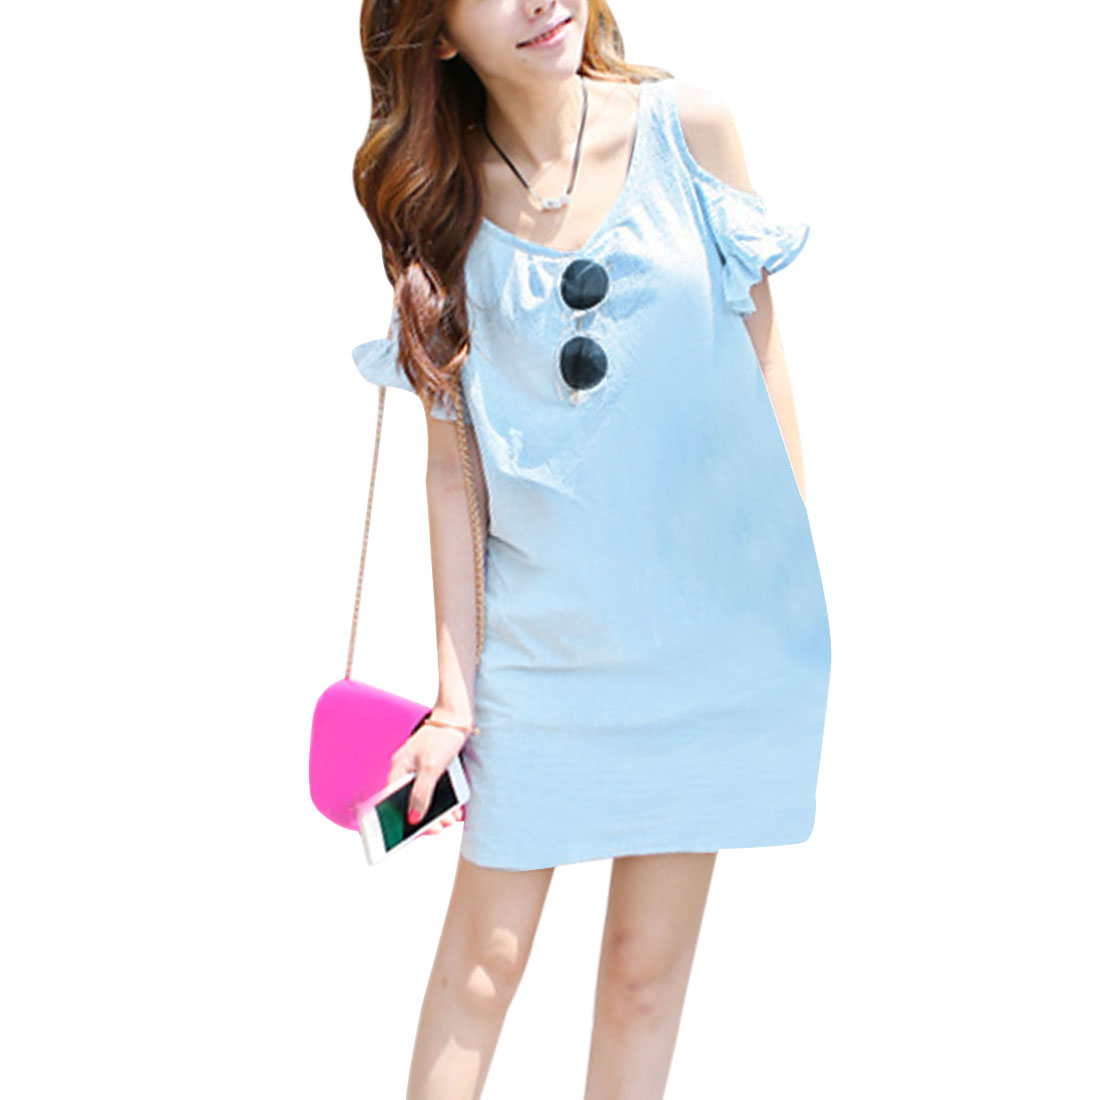 Ladies Baby Blue Cutout Sleeve Cute Flounce Cuffs S Dress